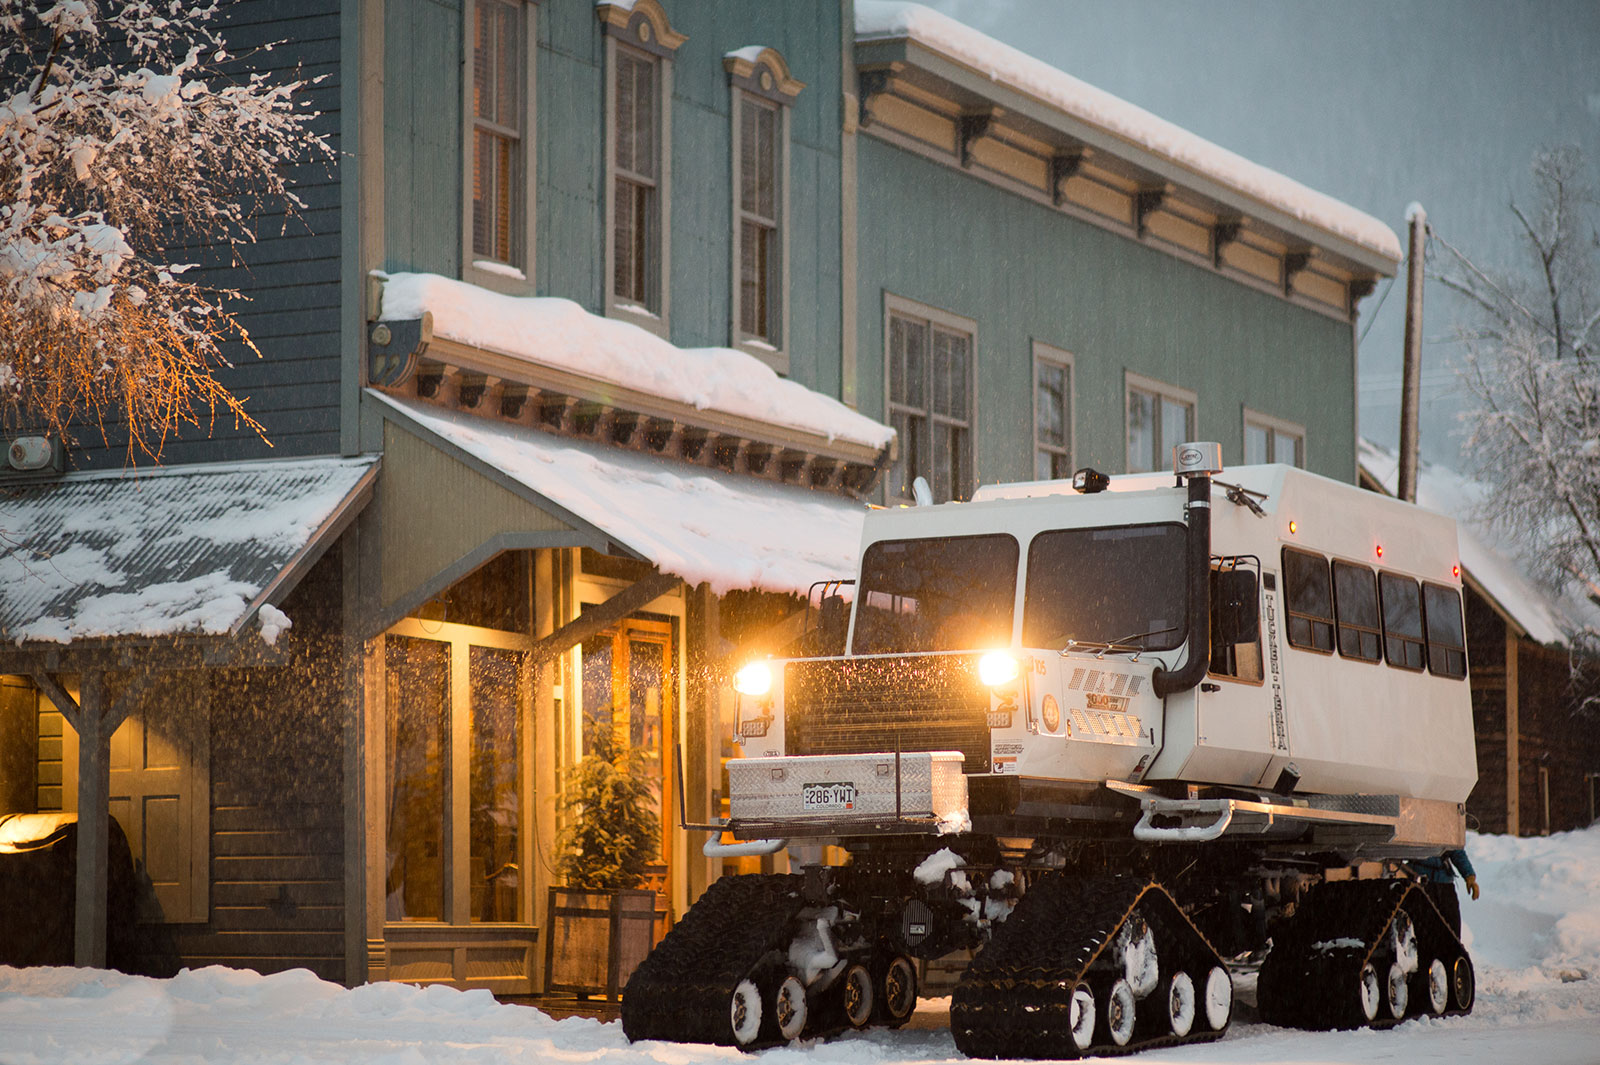 a private snowcat in front of Scarp Ridge Lodge, Crested Butte